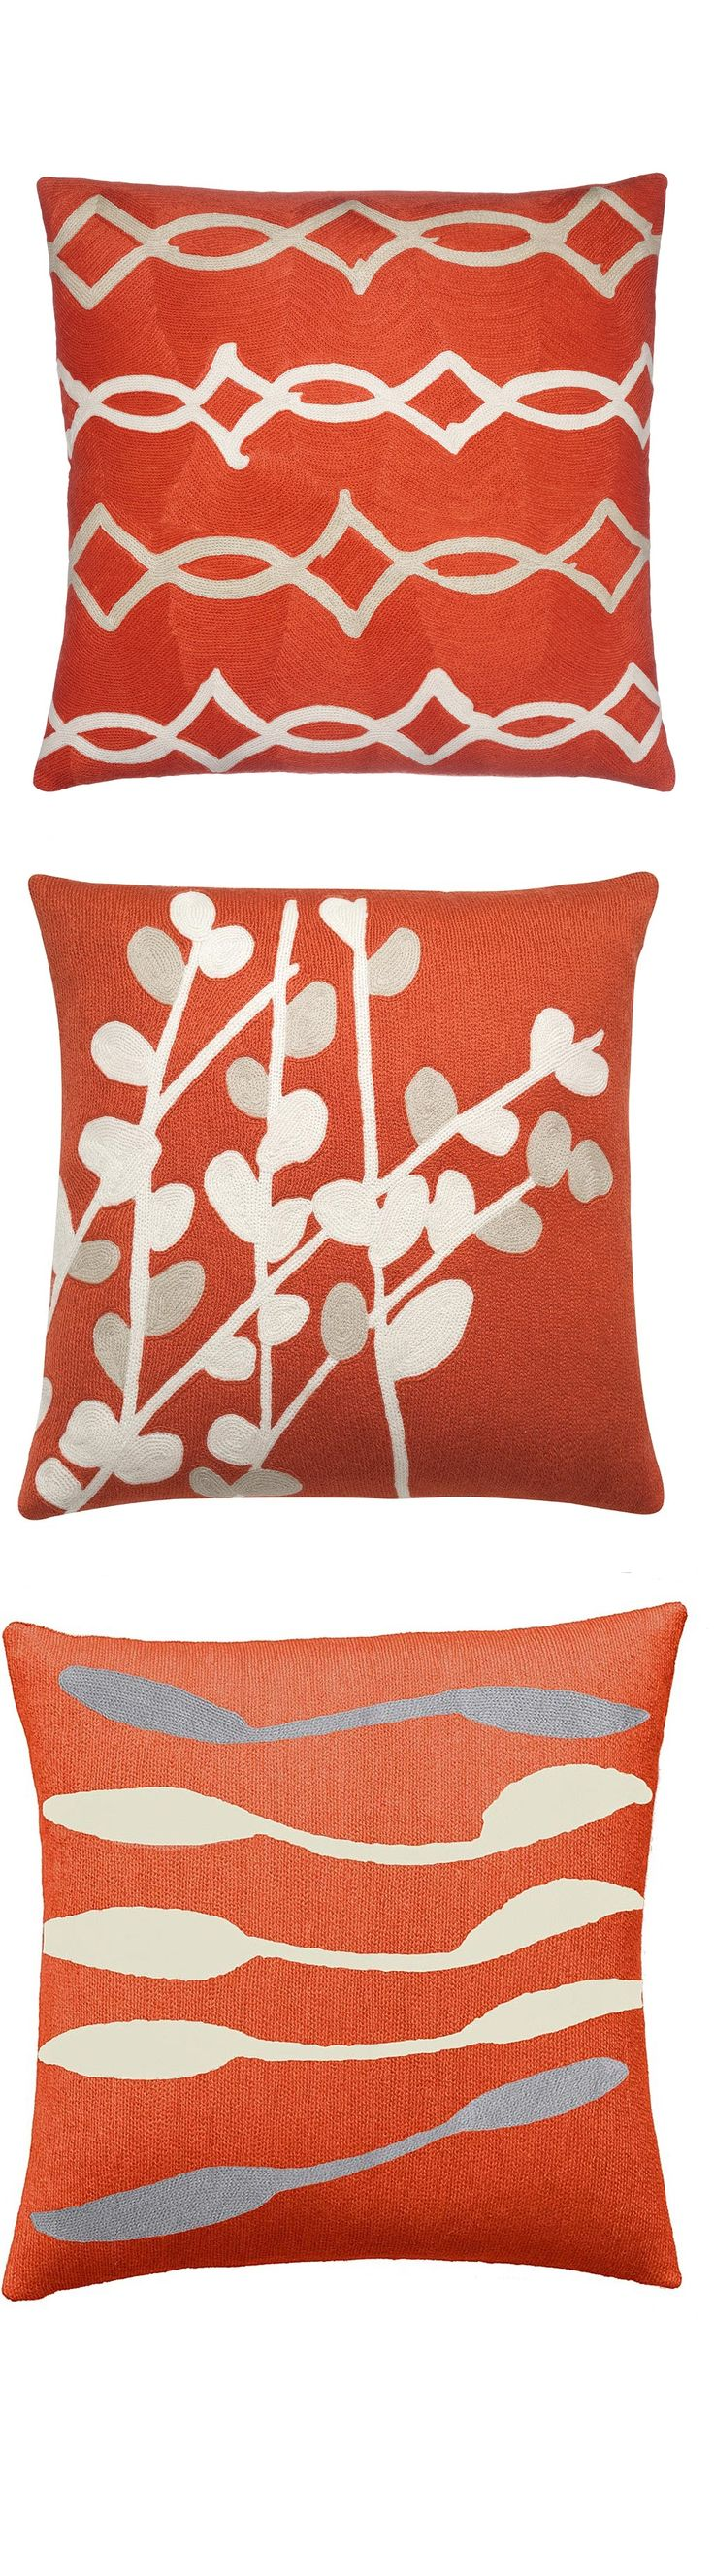 best  orange throw pillows ideas only on pinterest  orange  - orange pillows orange throw pillows orange modern pillows by instyle